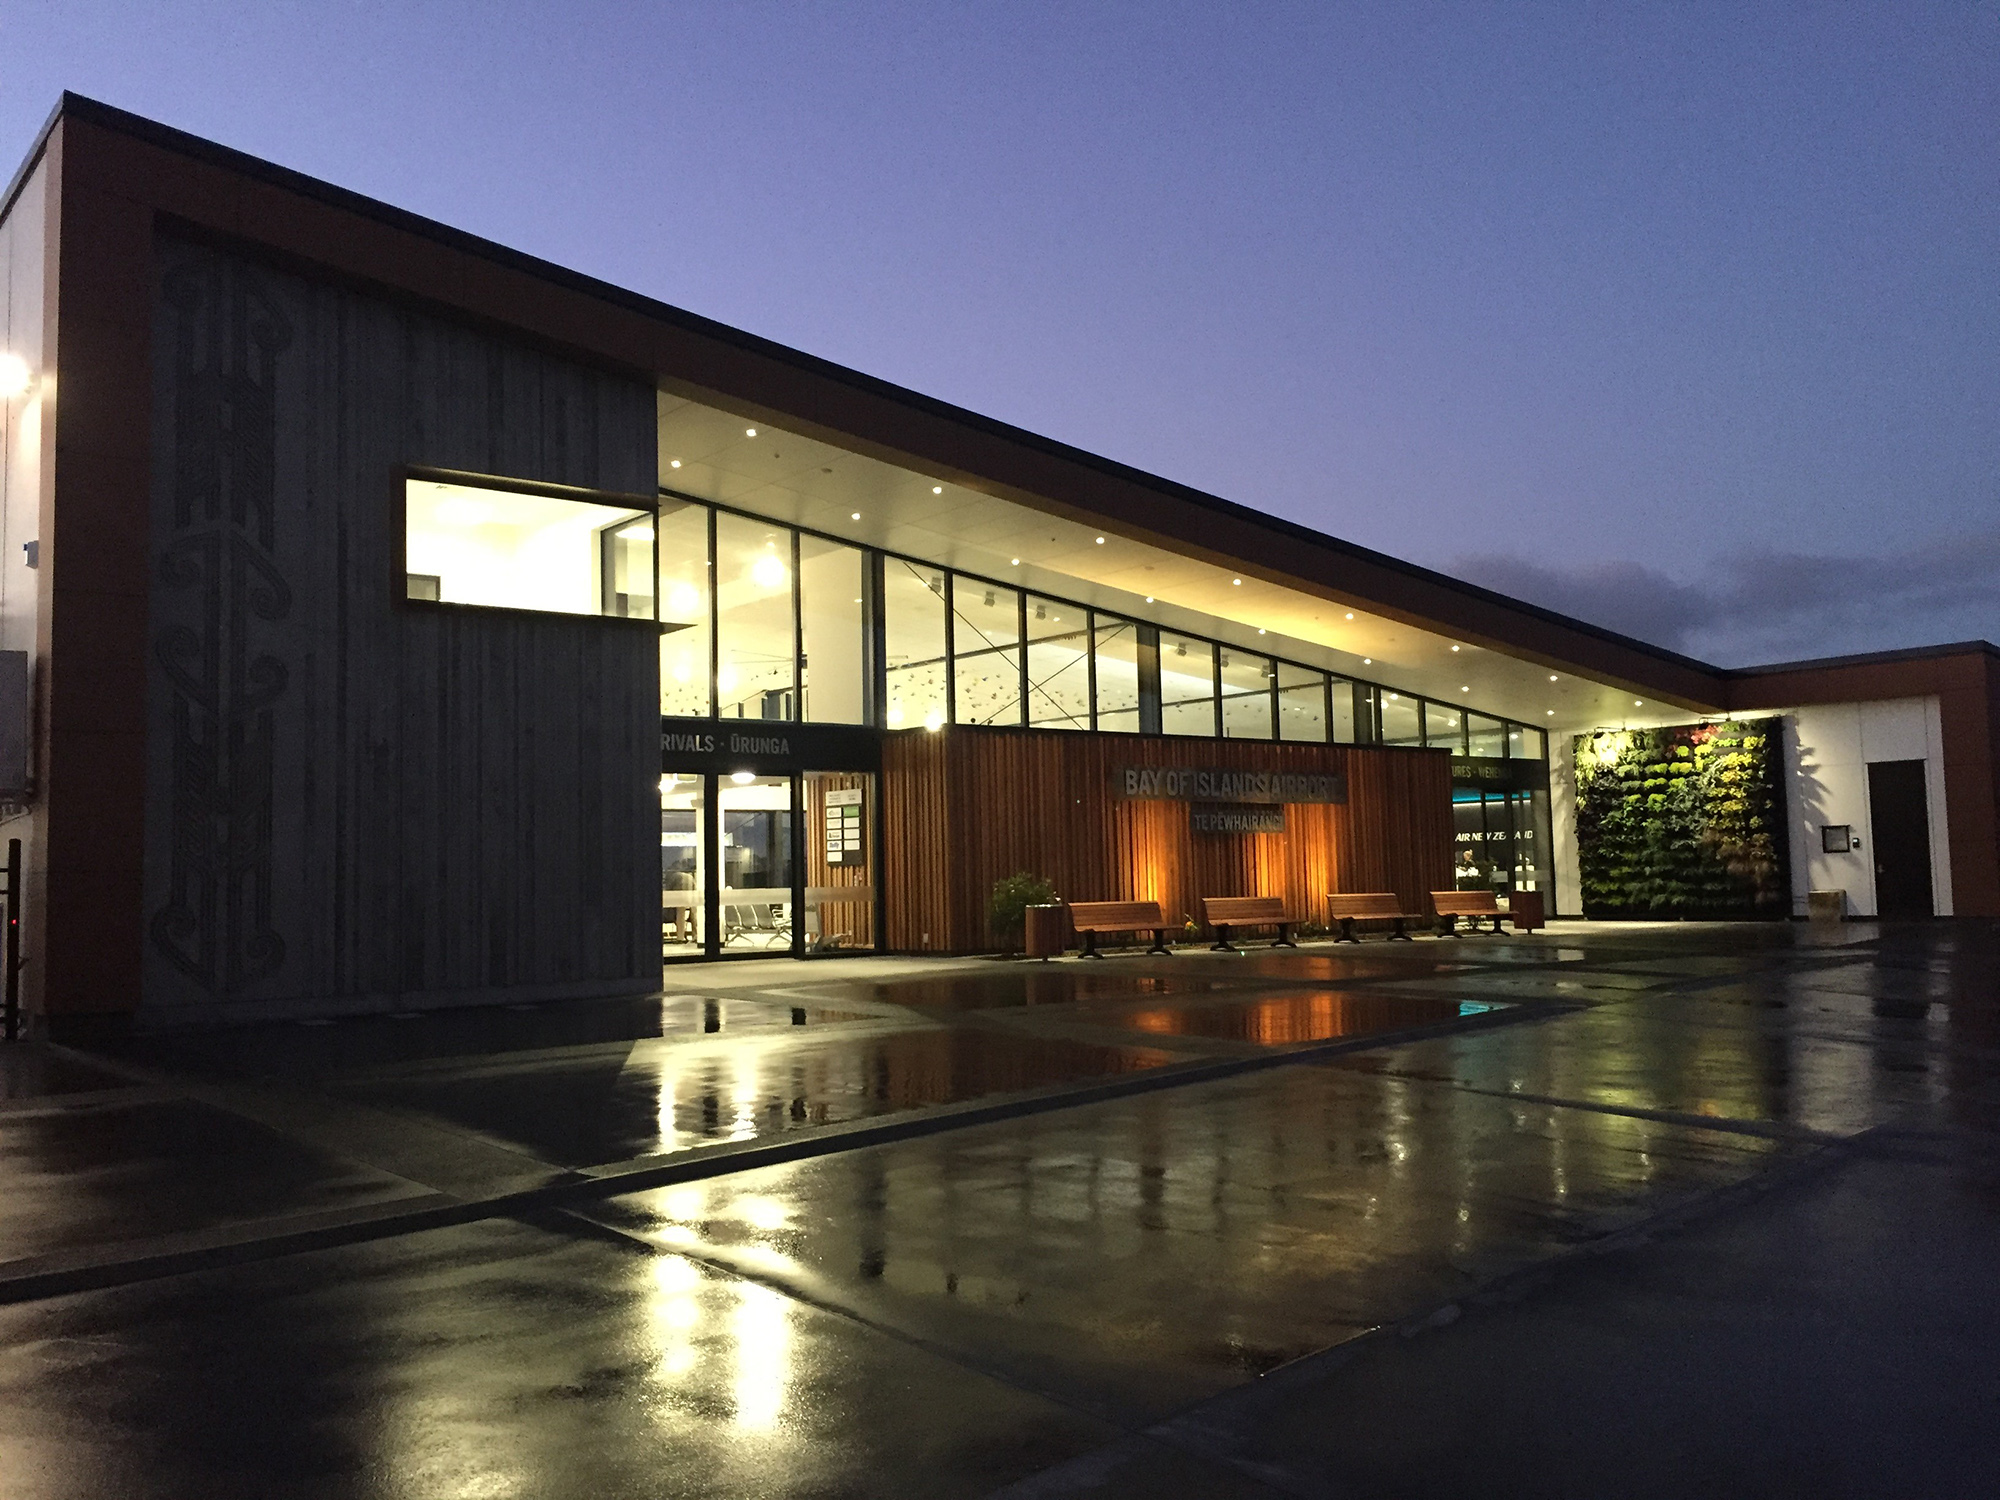 New Bay of Islands Airport Terminal Building